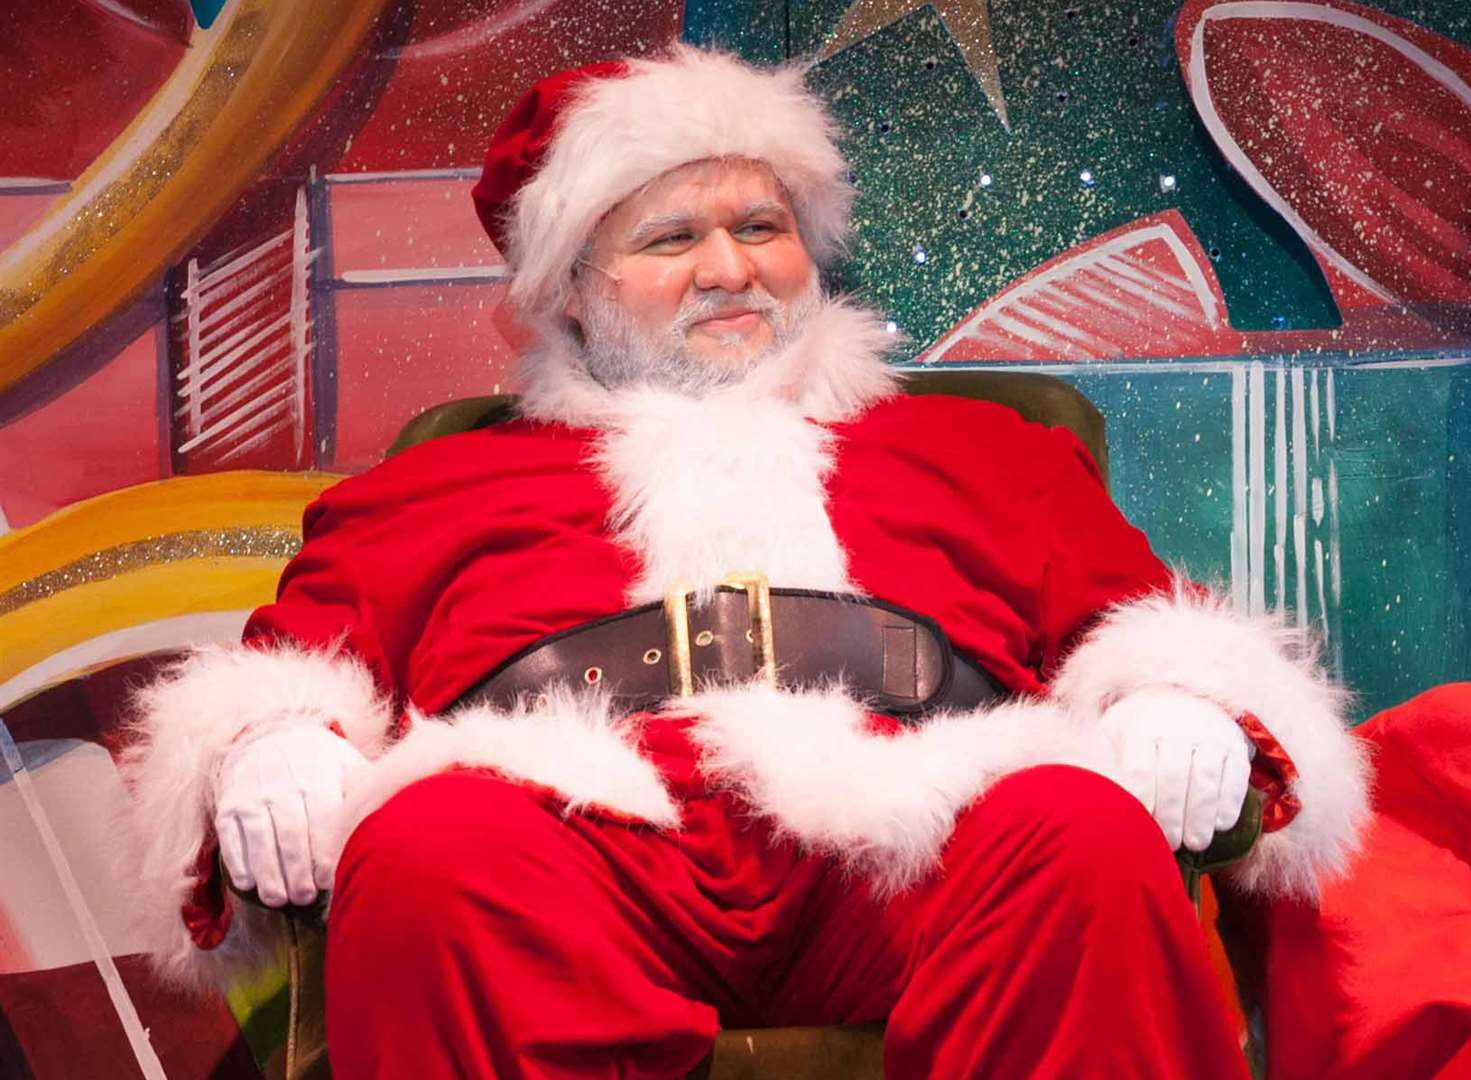 Santa ready to deliver in Miracle on 34th Street